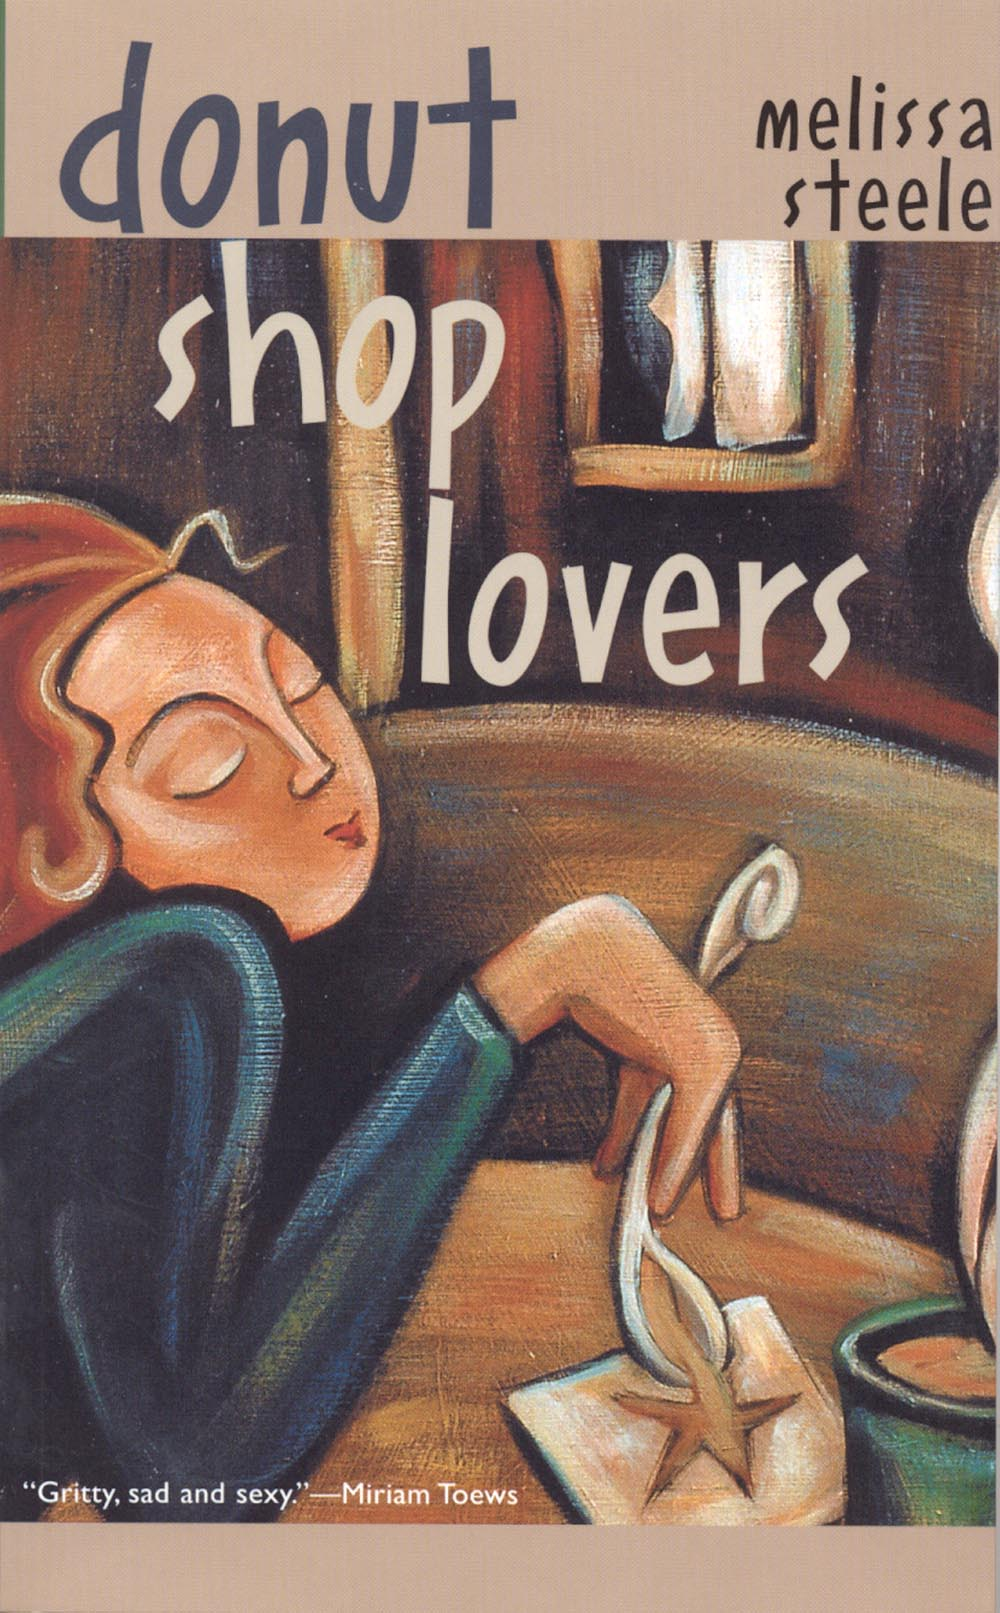 Donut Shop Lovers by Melissa Steele